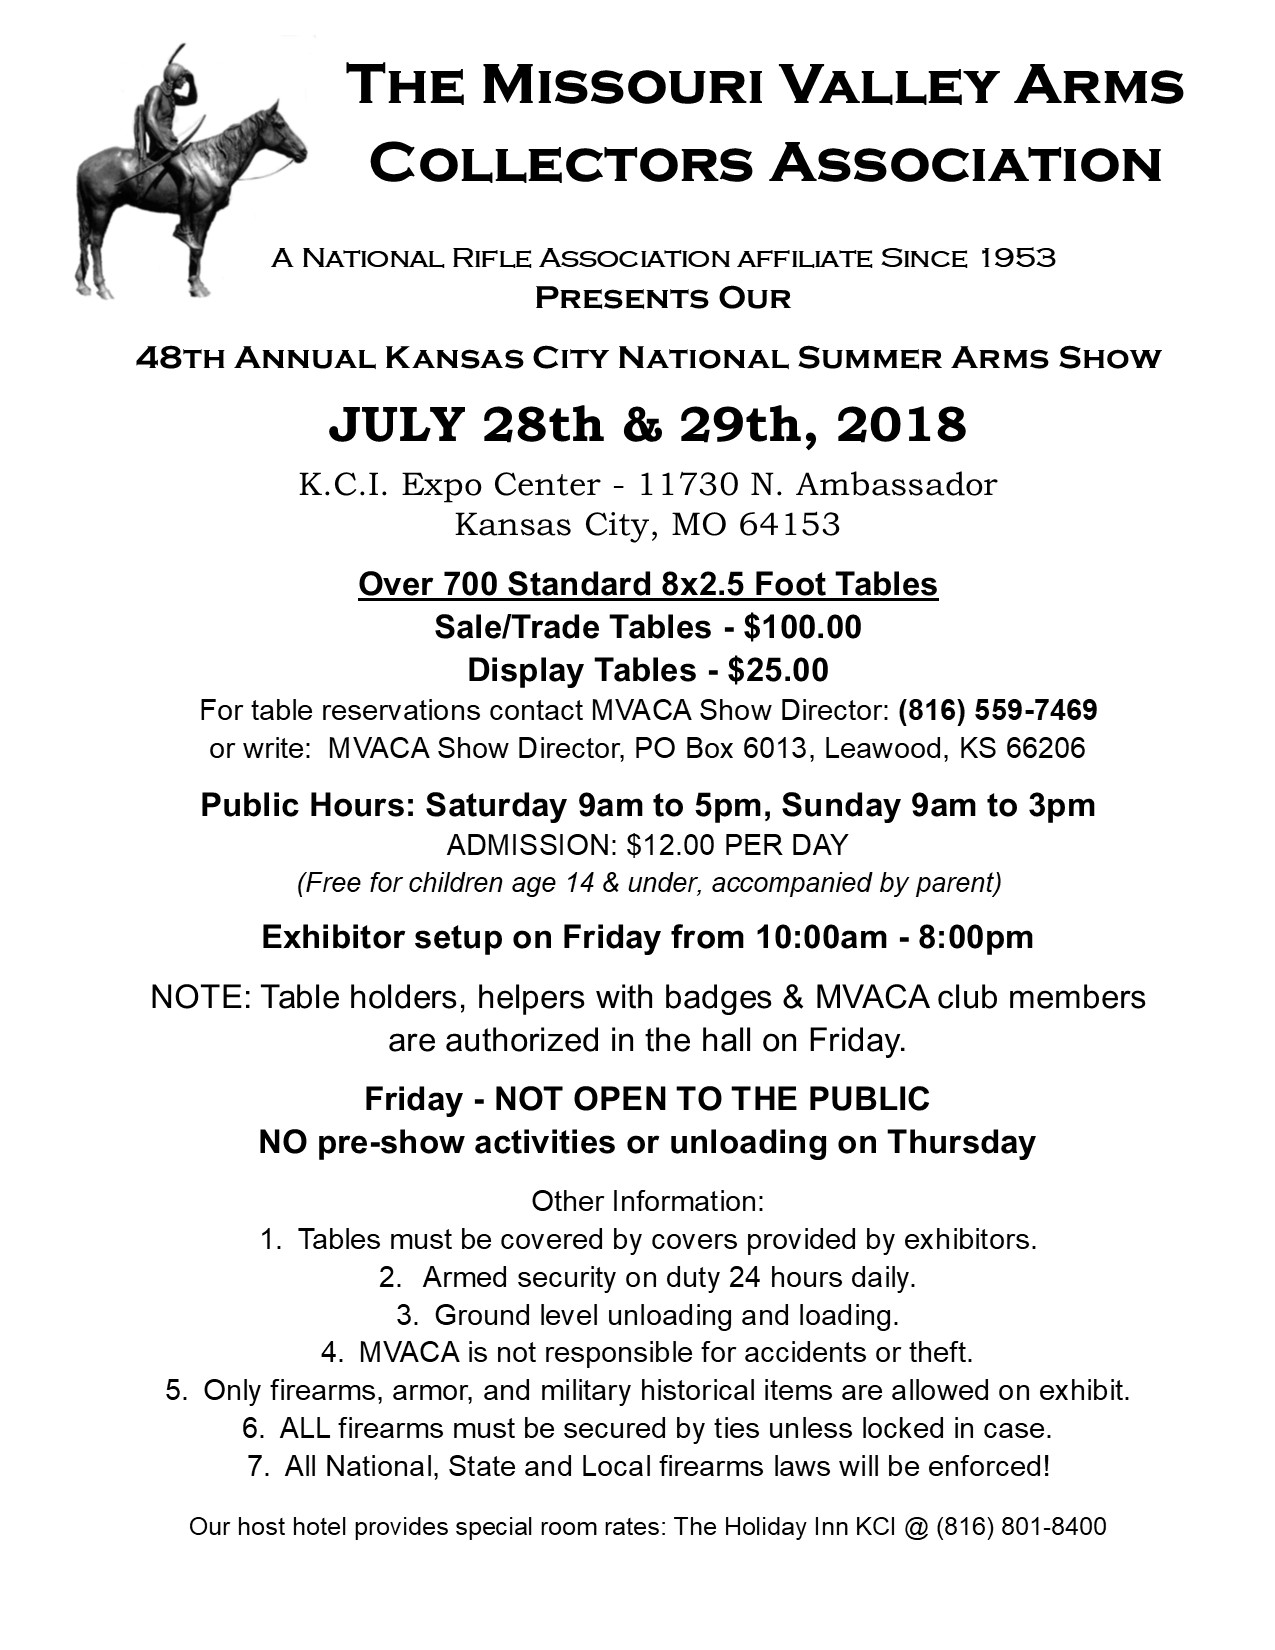 MVACA 2018 National Summer Arms Show Flyer